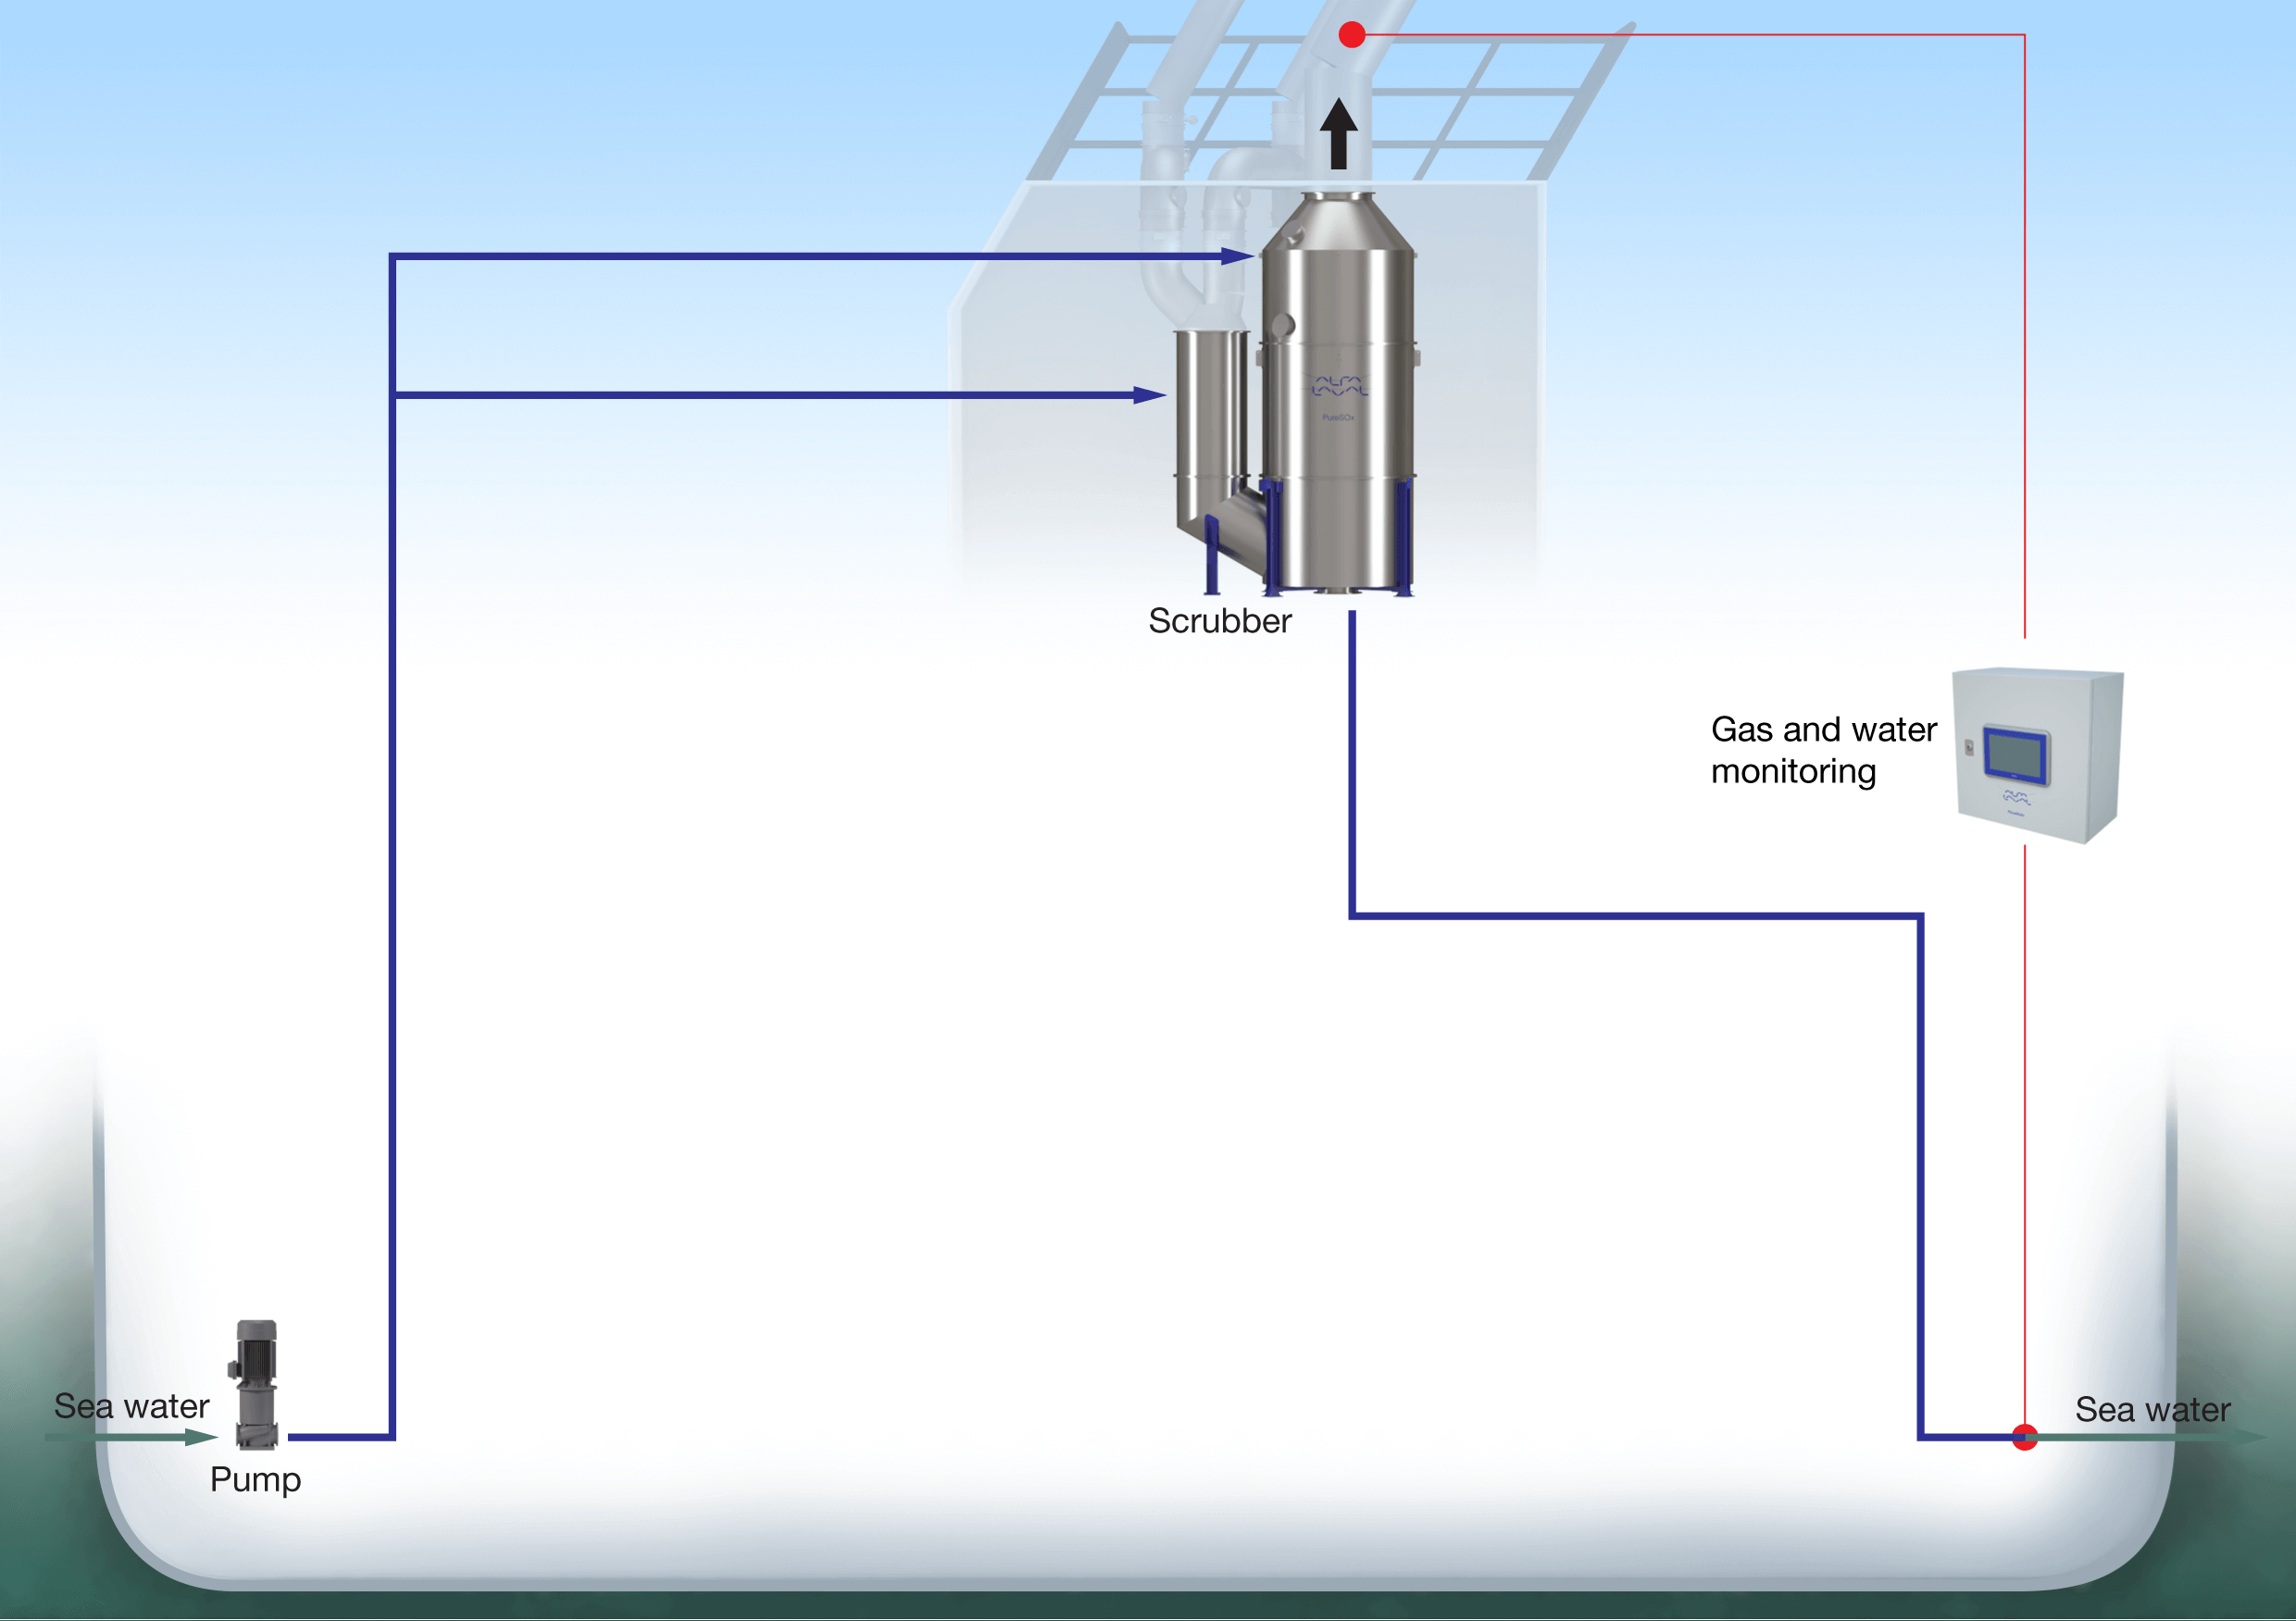 Alfa Laval Puresox Electricity From Sea Water Curcuit Diagram Set Up Image This Configuration Has The Lowest Investment And Operating Costs But Its Use May Be Limited By Low Alkalinity Or Local Discharge Regulations